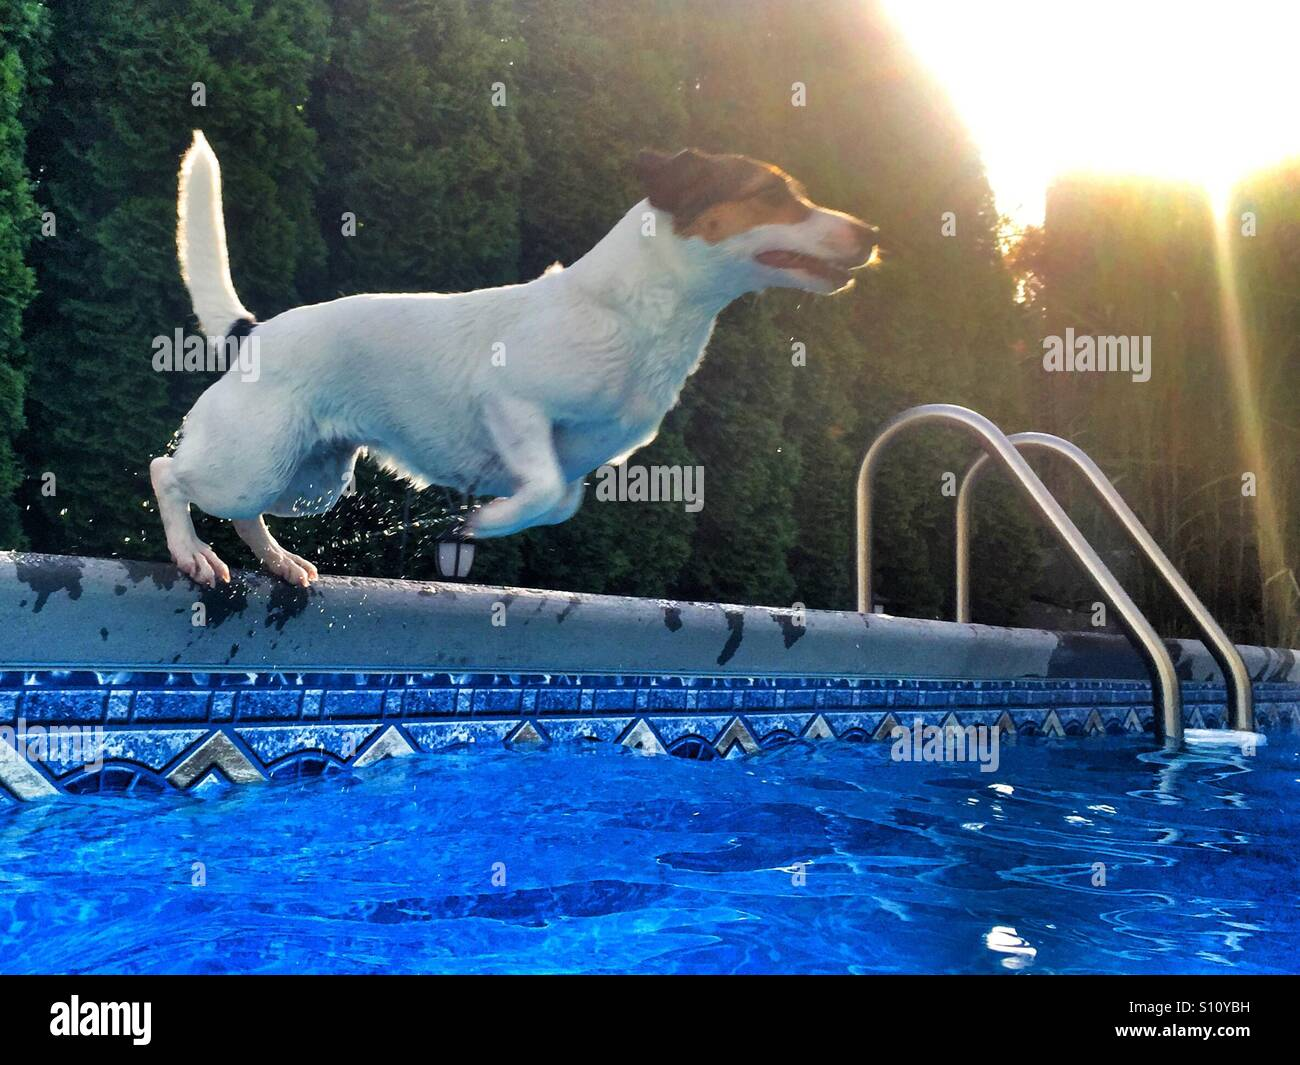 Swimming Pool Action : A fit dog jumping into swimming pool action shot